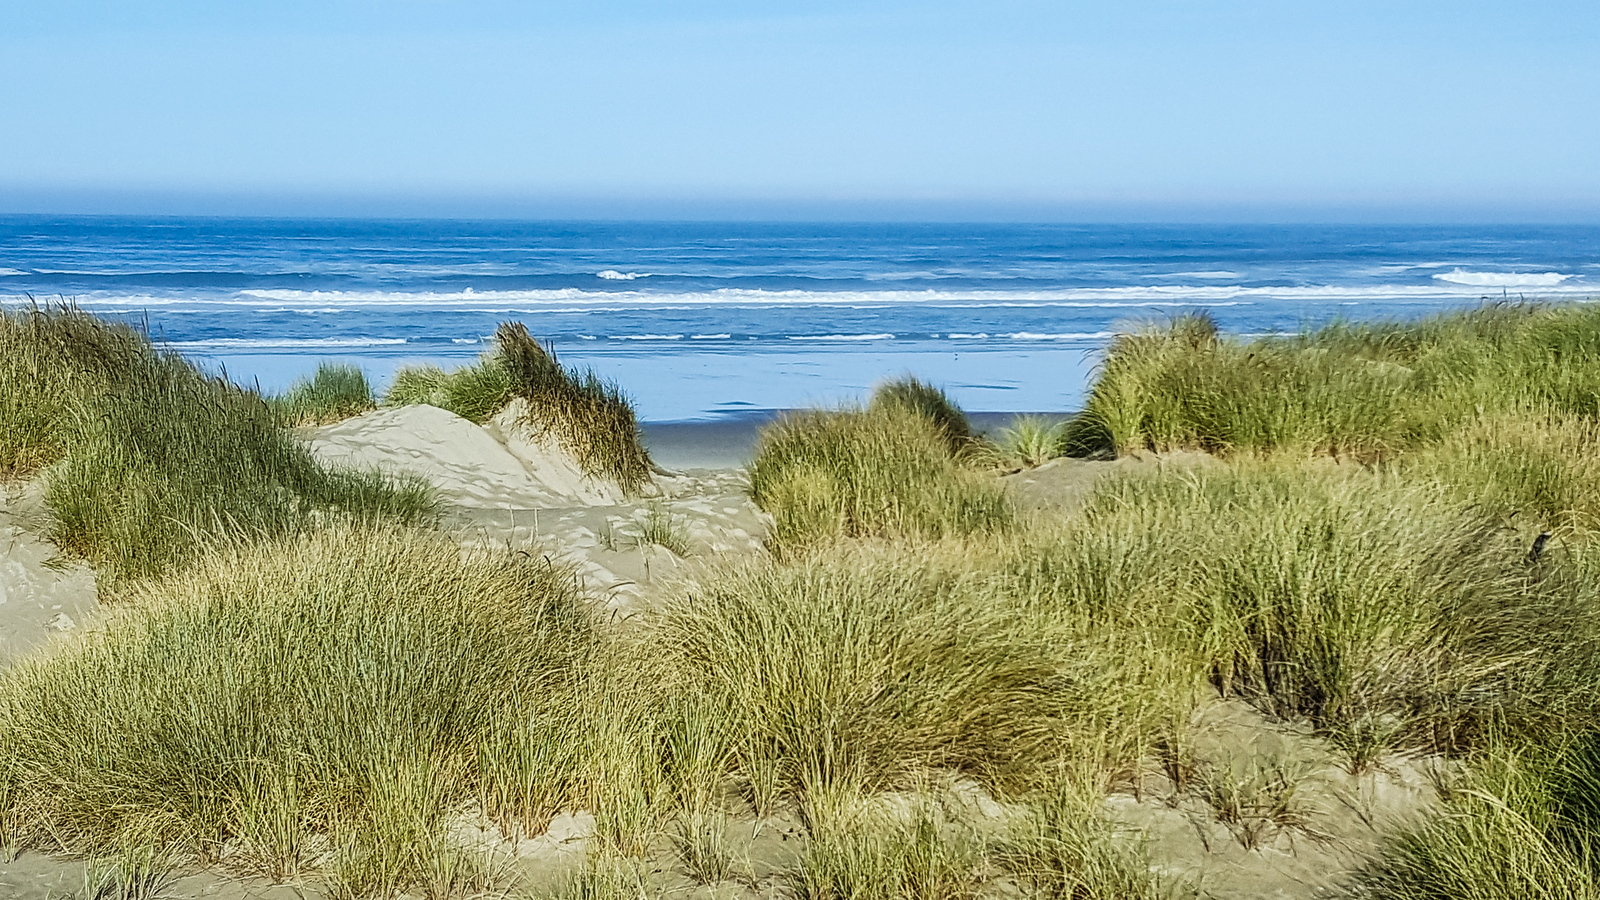 Walk the beach on an Oregon fall trip. #boomertravel #USA #Oregon #Waldport #falltrip